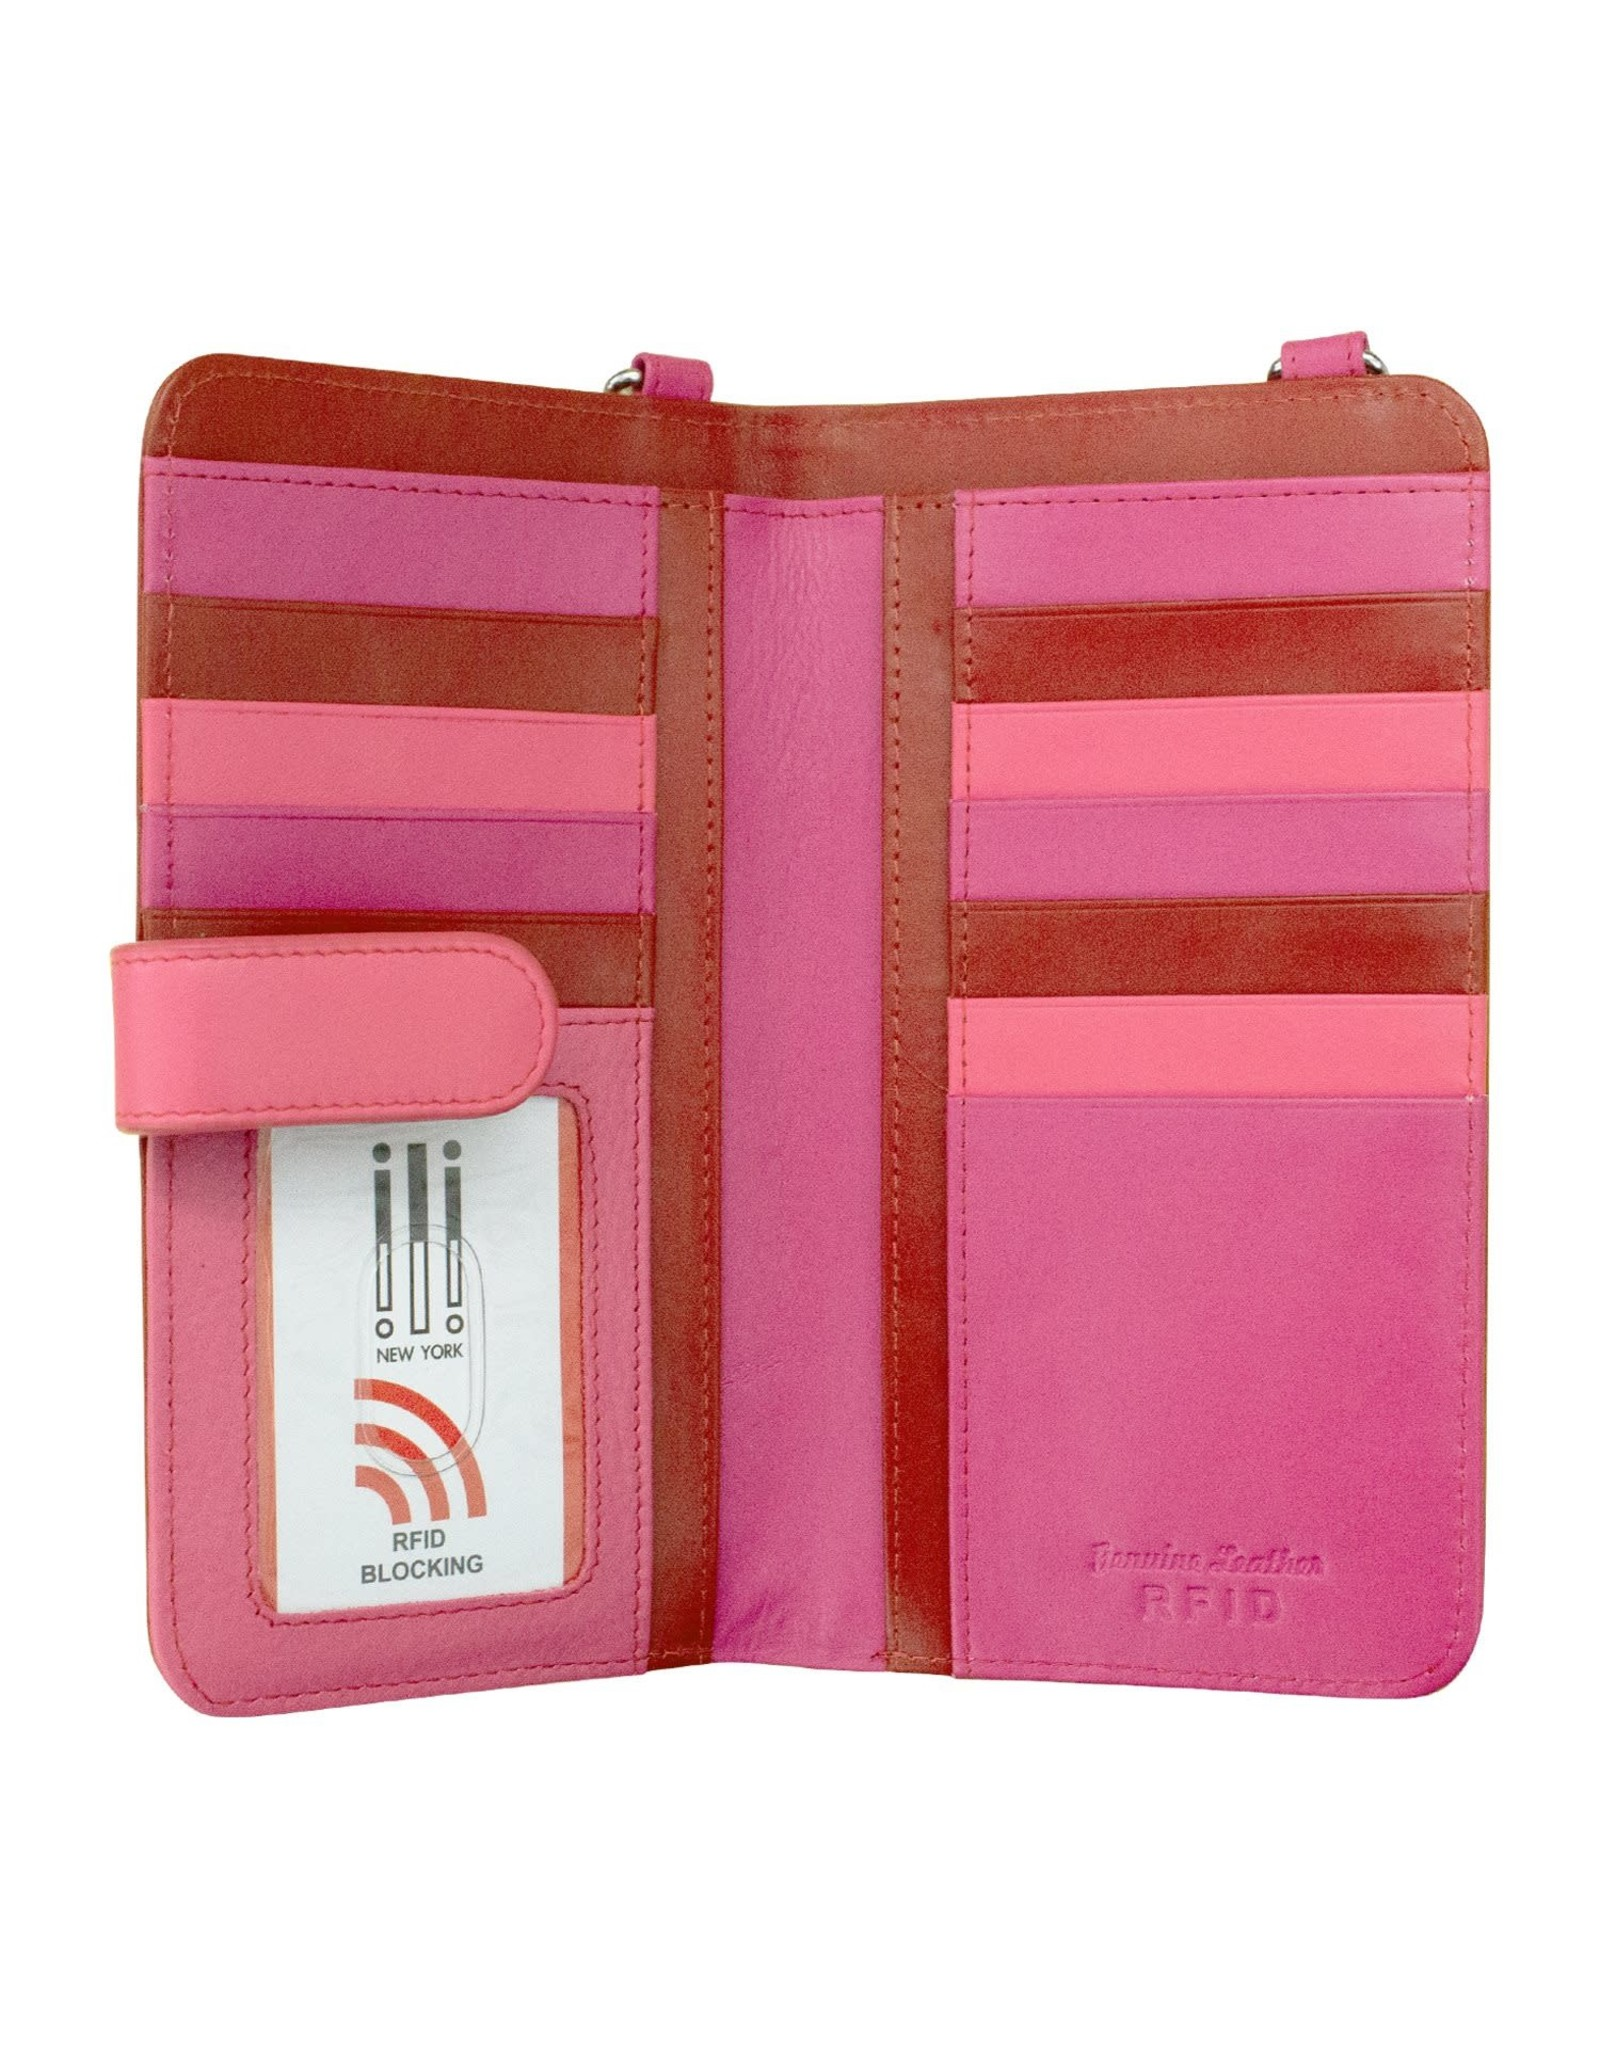 Leather Handbags and Accessories 6363 Rouge - RFID Organizer Crossbody